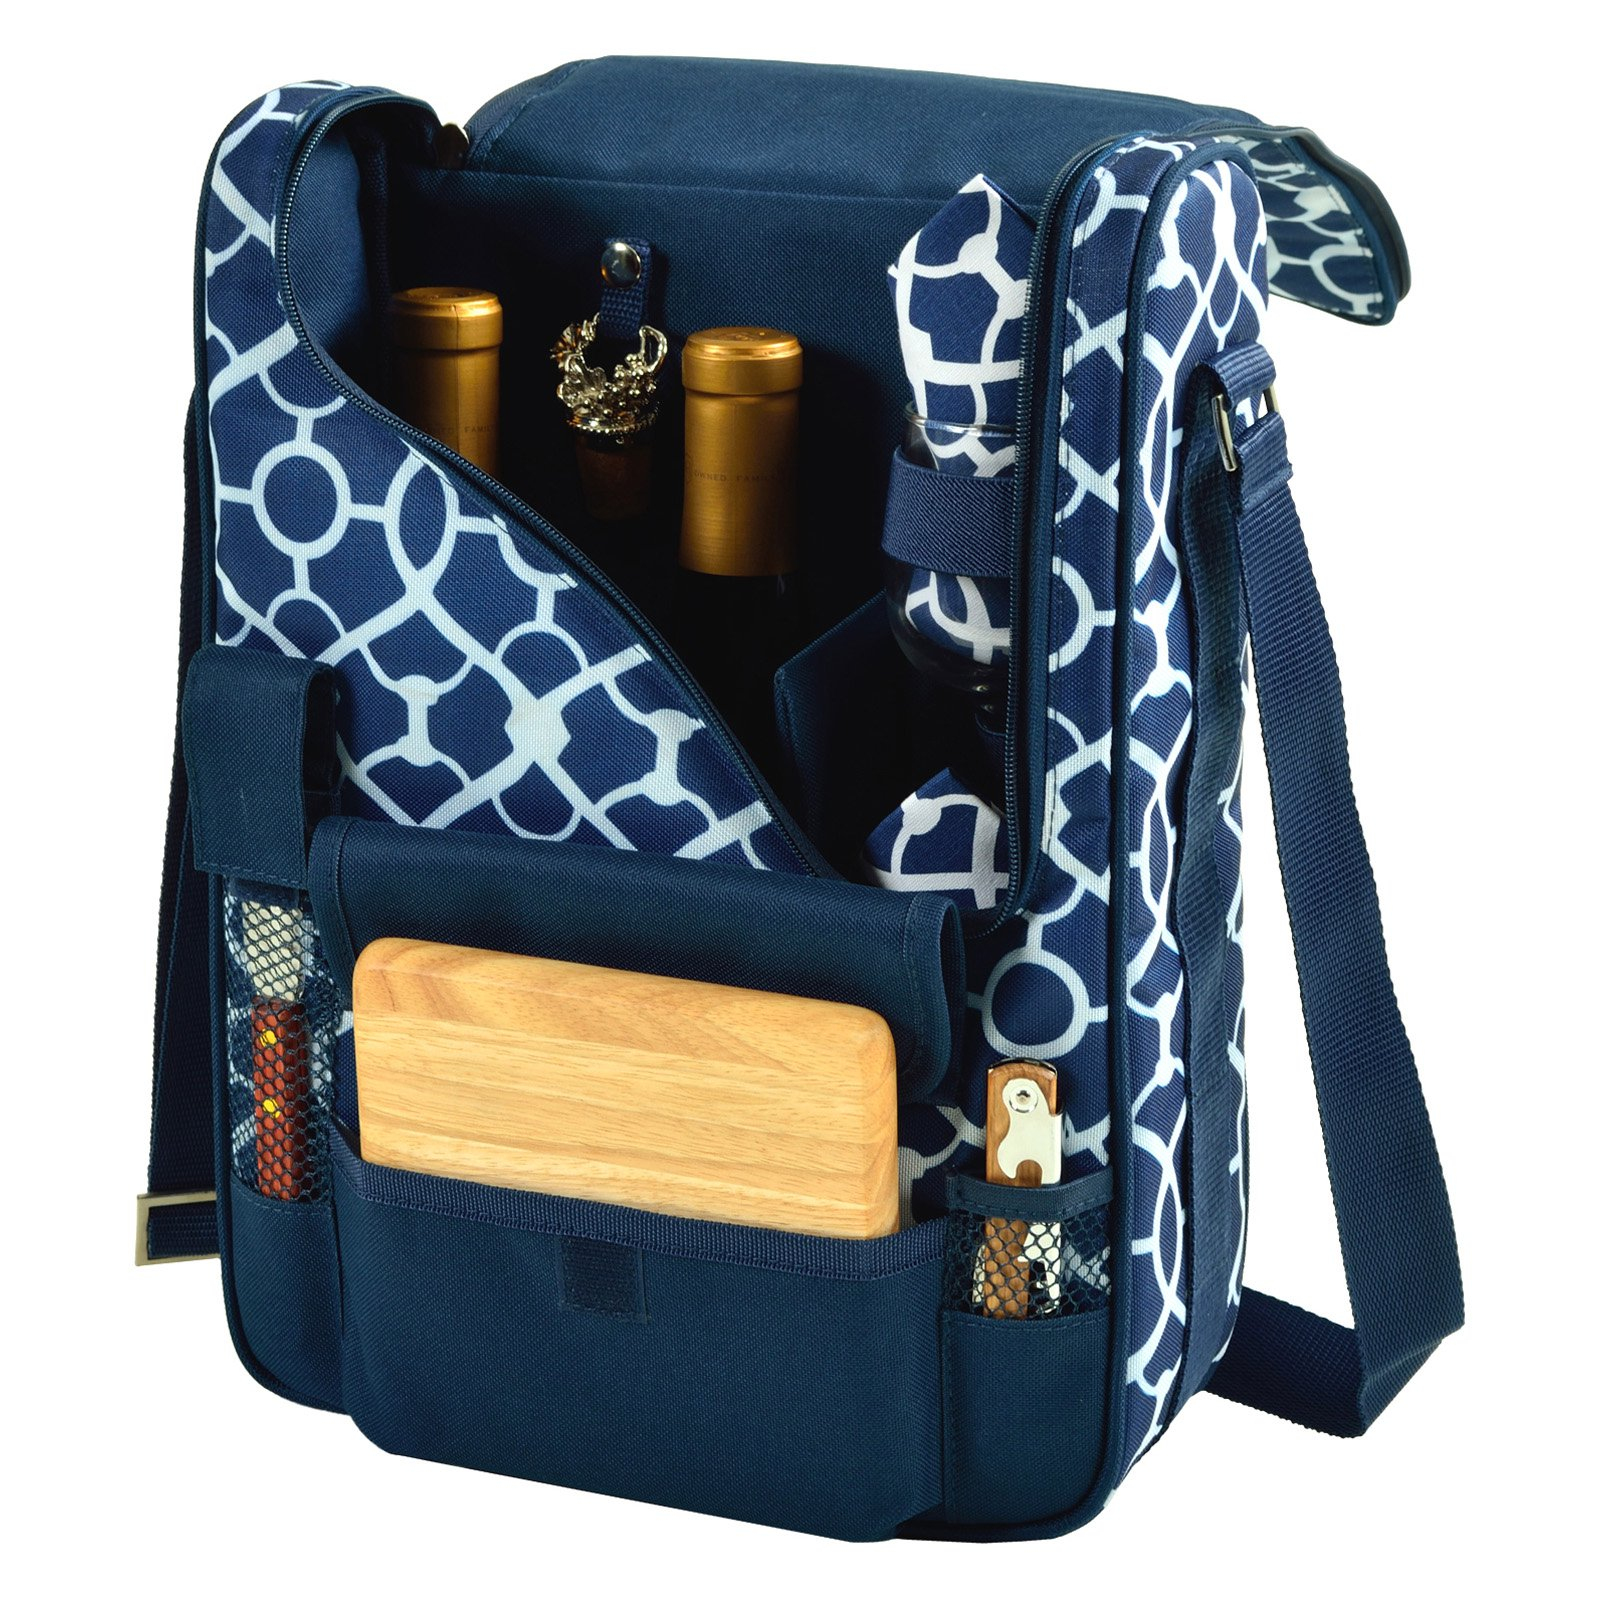 Picnic at Ascot 2 Person Deluxe Wine and Cheese Cooler Bag